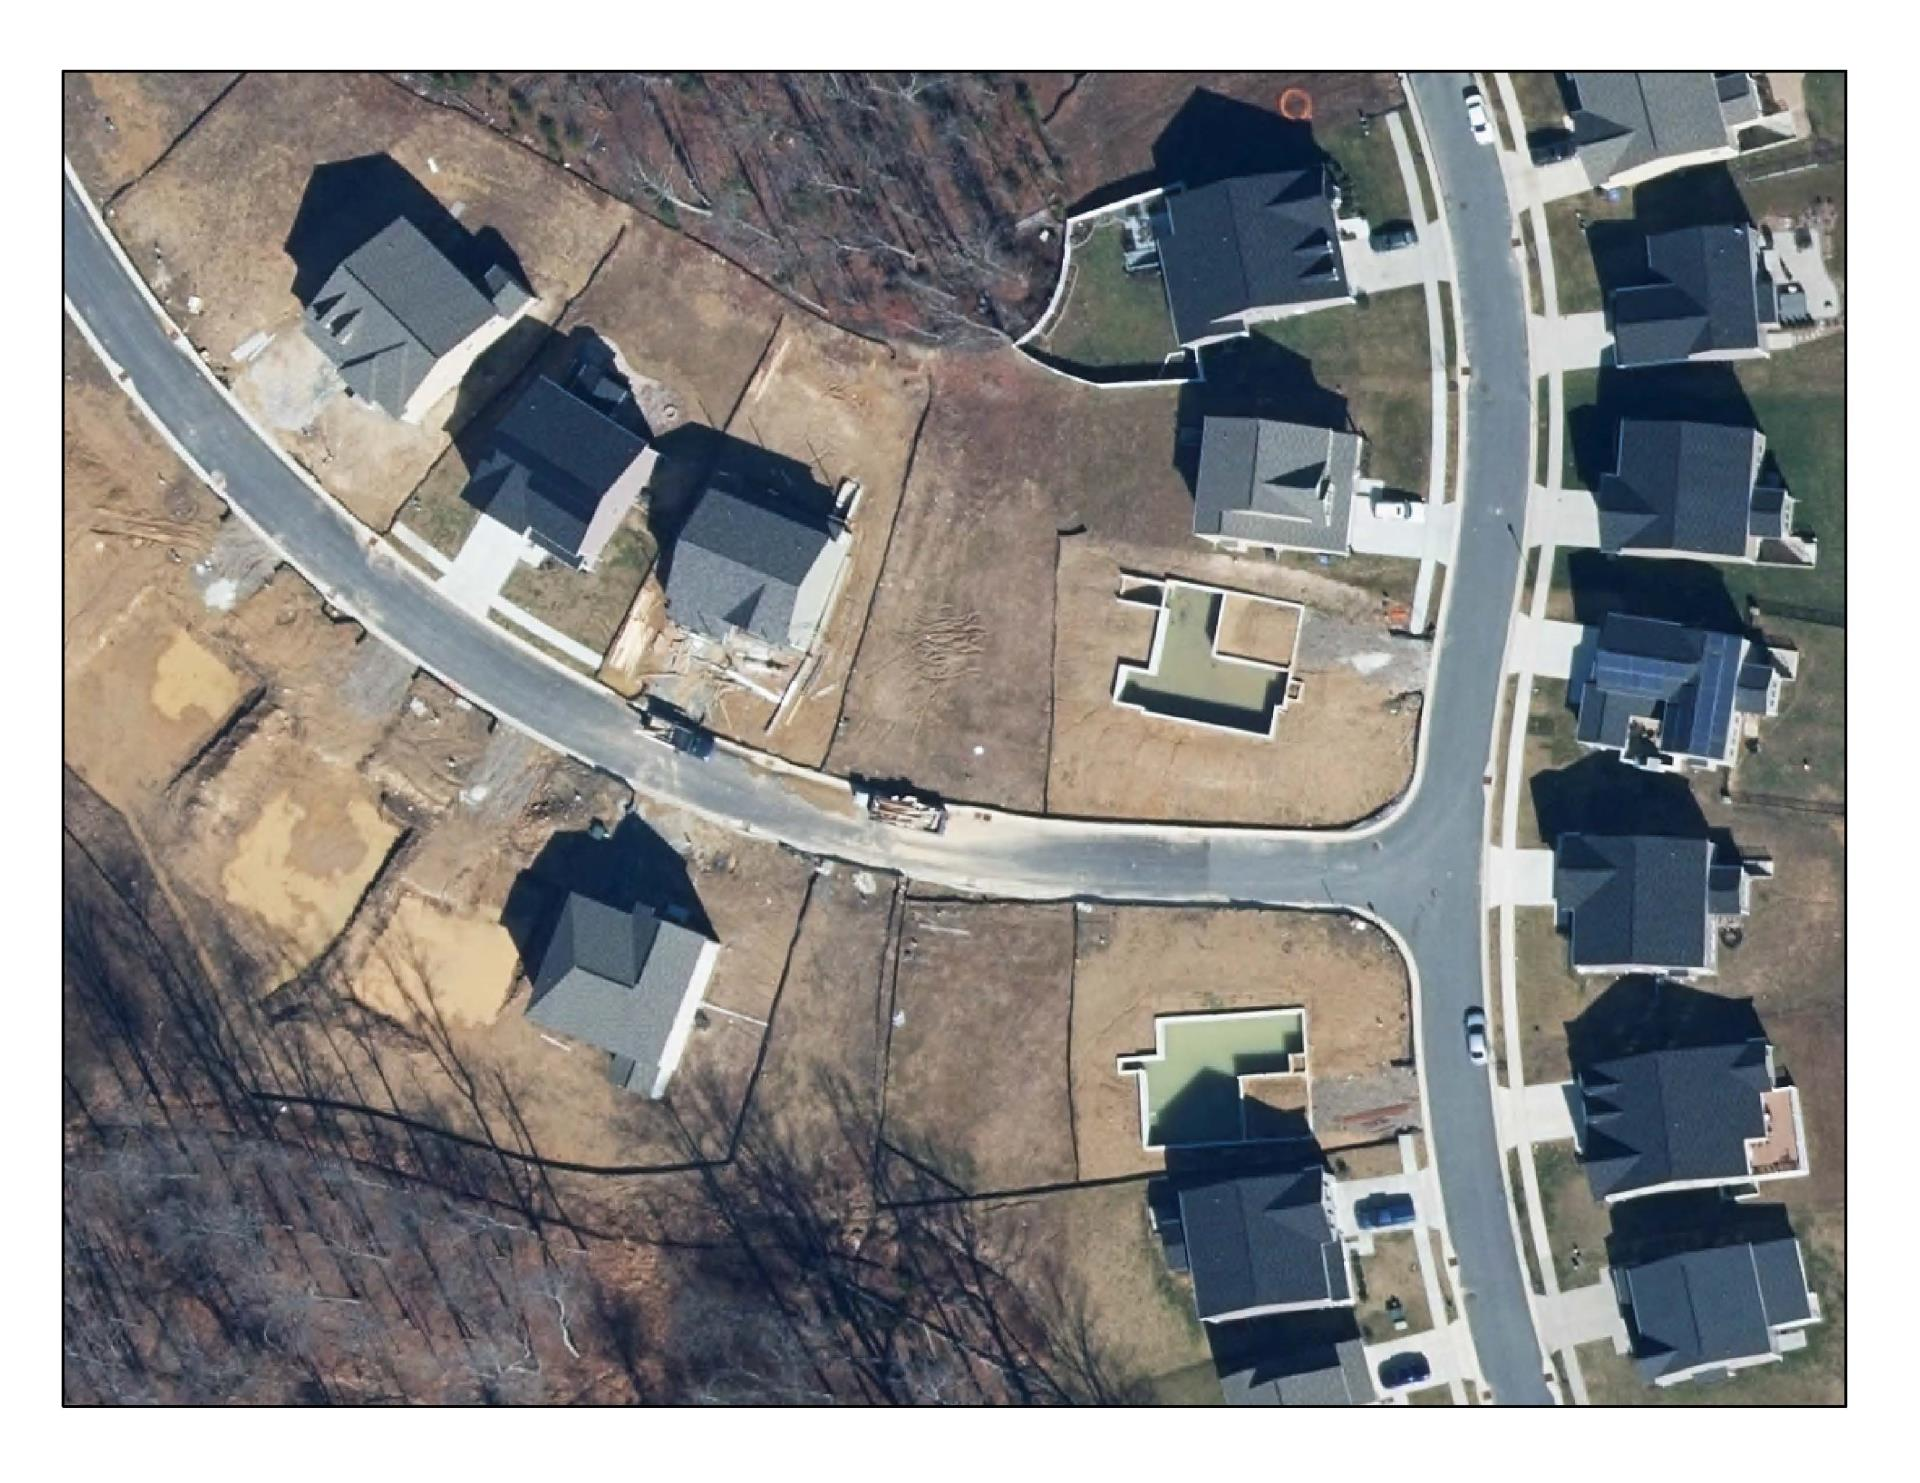 County Obtains $362,000 Grant for High Resolution Aerial Imagery